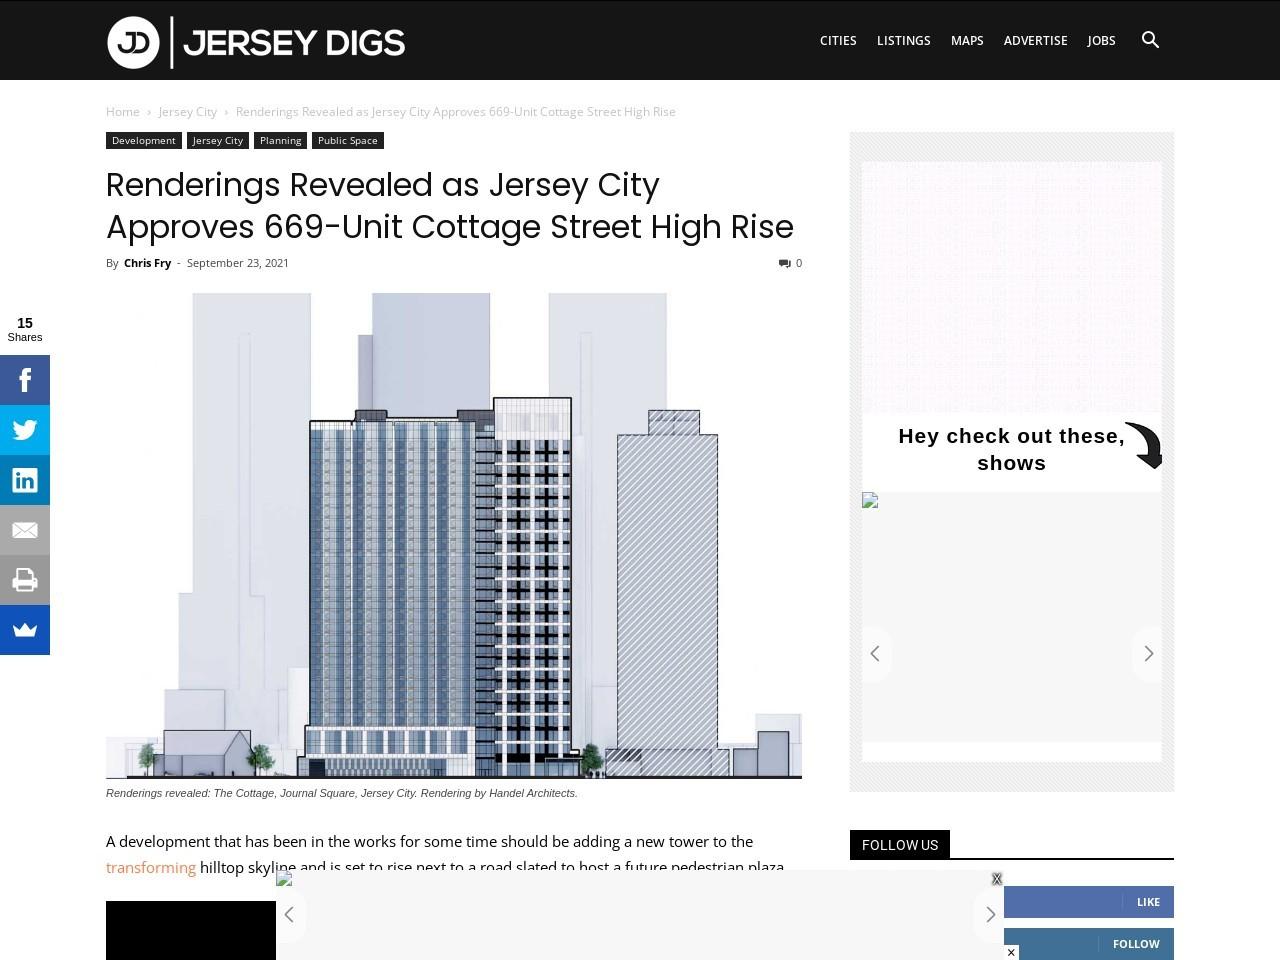 Renderings Revealed as Jersey City Approves 669-Unit Cottage Street High Rise